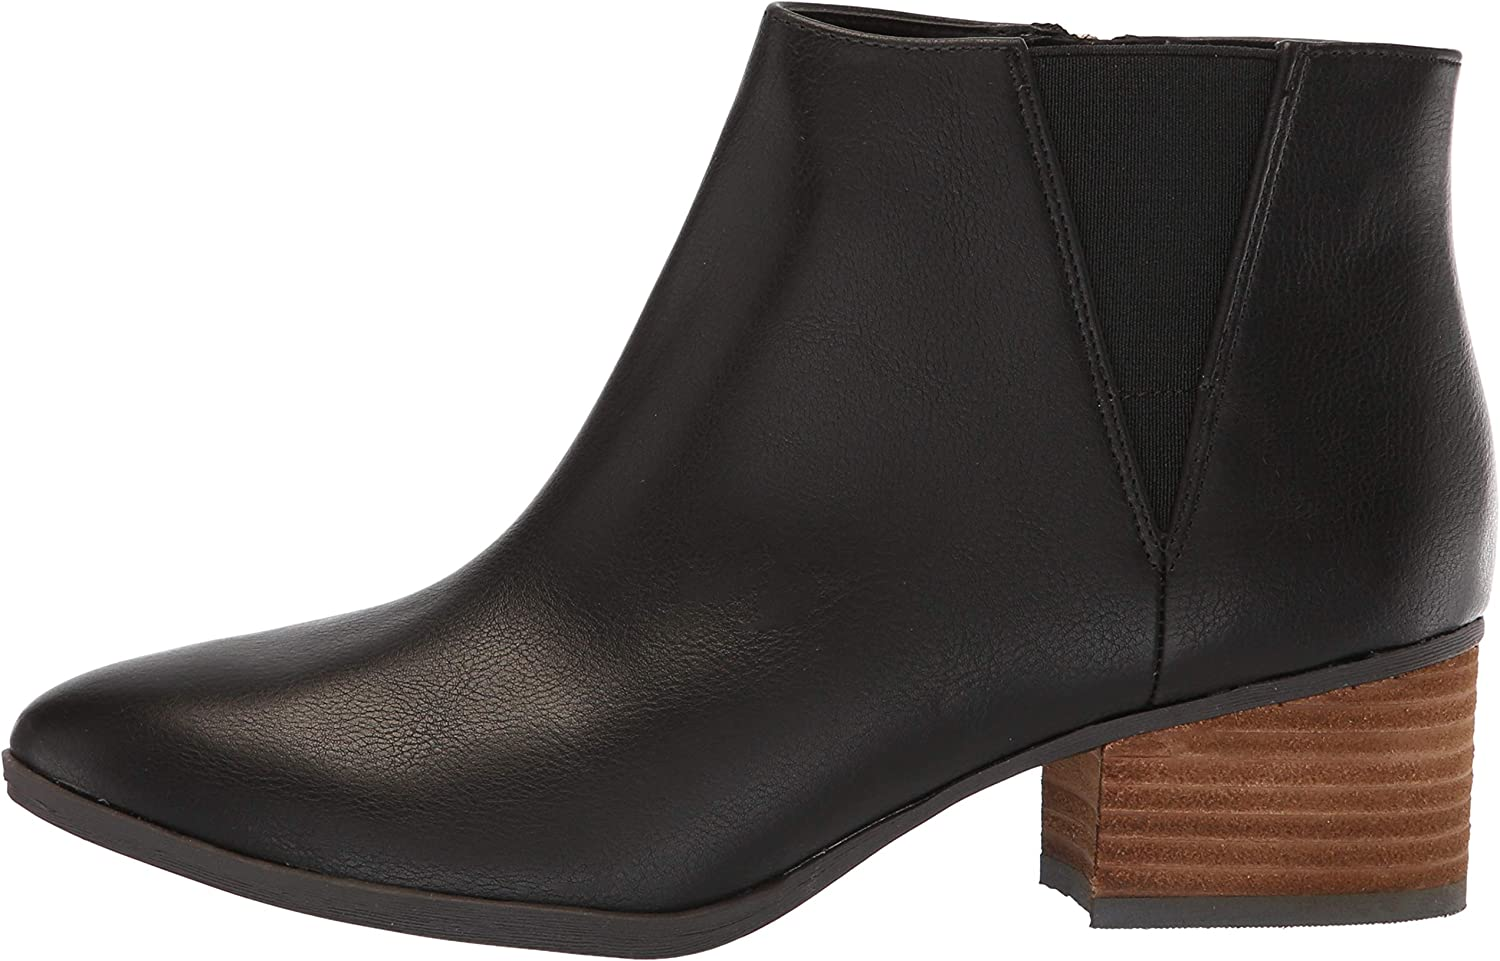 Scholls Shoes Womens Tumbler Ankle Boot Dr